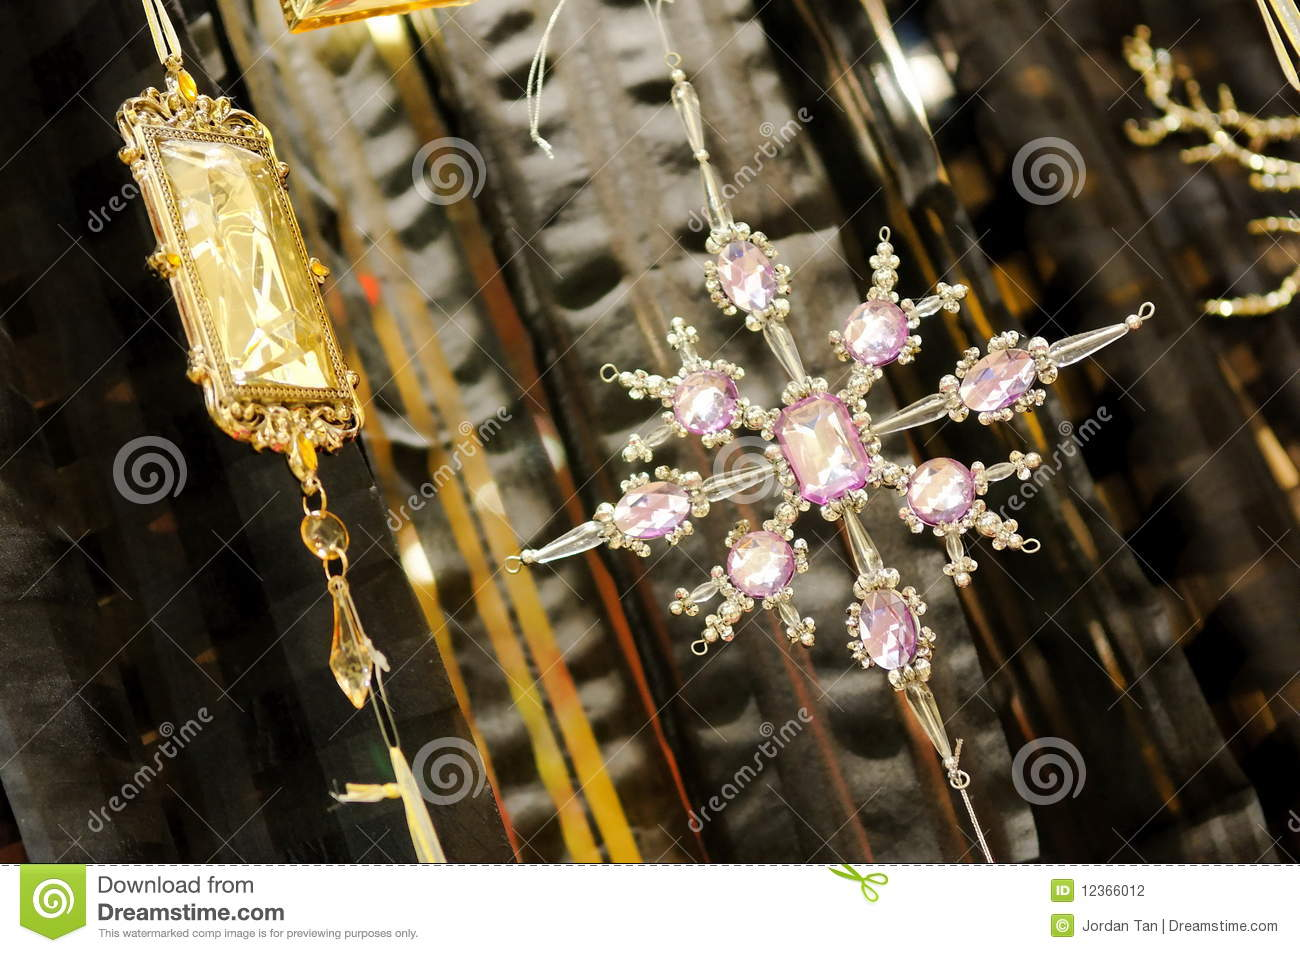 Home Decor Crystals Stock Photography Image 12366012